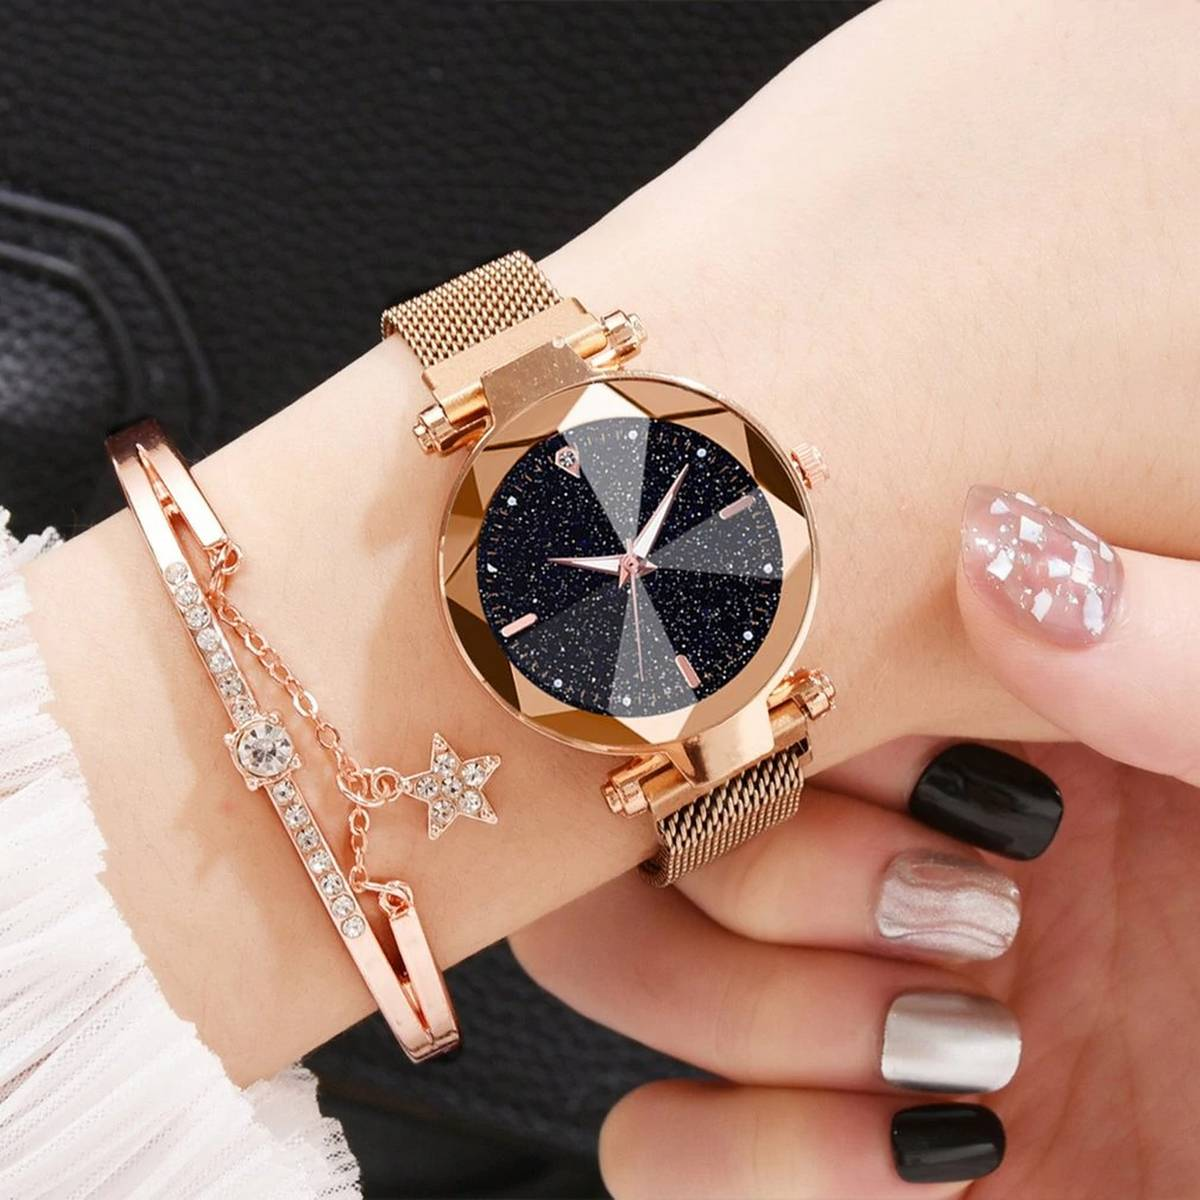 AQIMART Magnet Diamond Watch For Women & Girls With Bracelet Amazing Quality Unique Stylish Clock With Free Gift Box